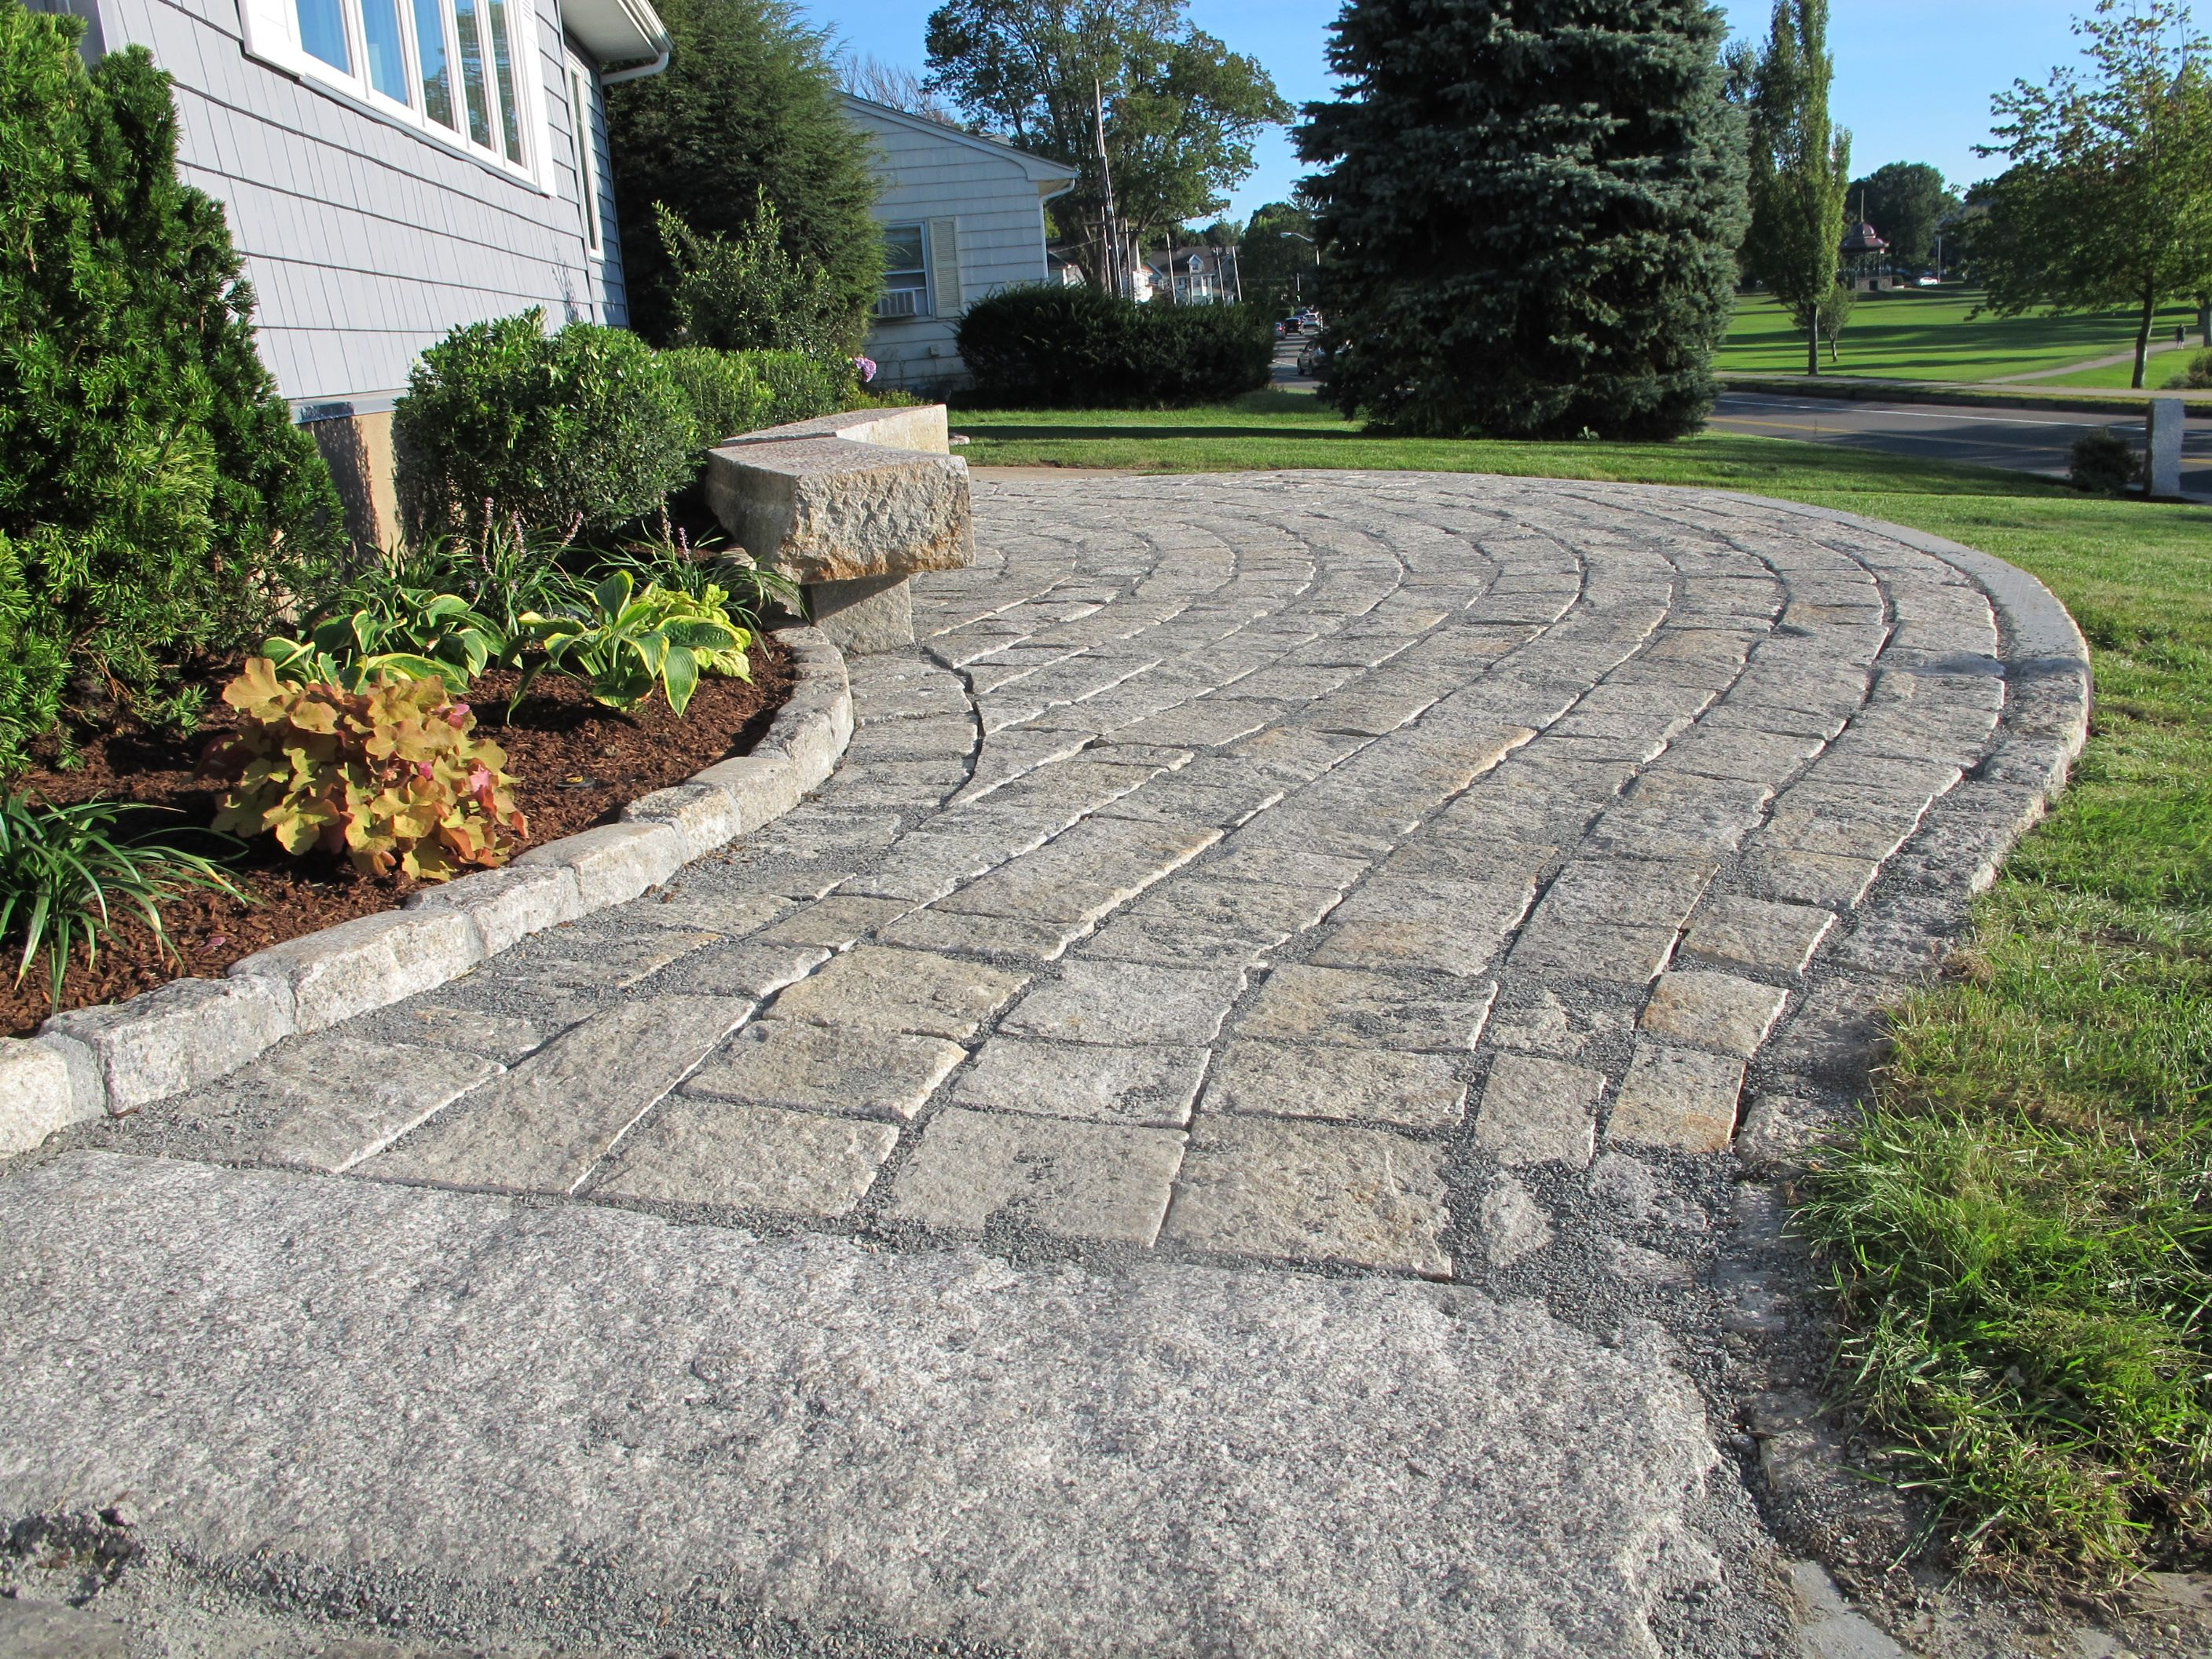 Reclaimed Granite Pavers And Cobblestone Edging Were Used In This Patio /walkway.